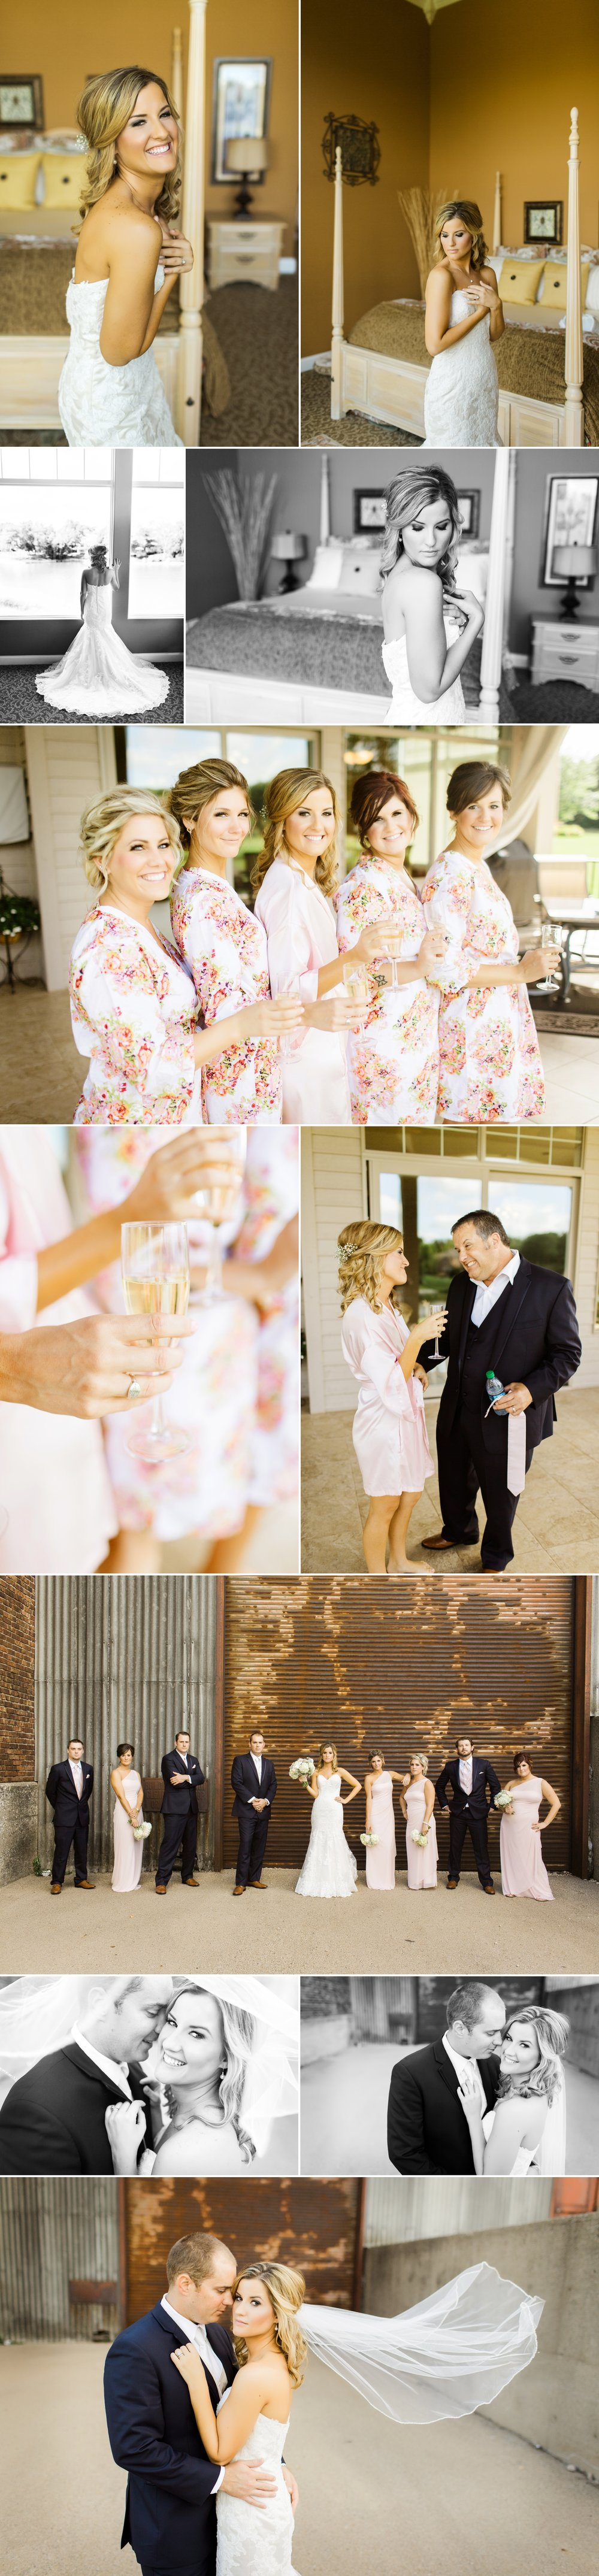 Mr. and Mrs. Flower Collage 7.jpg